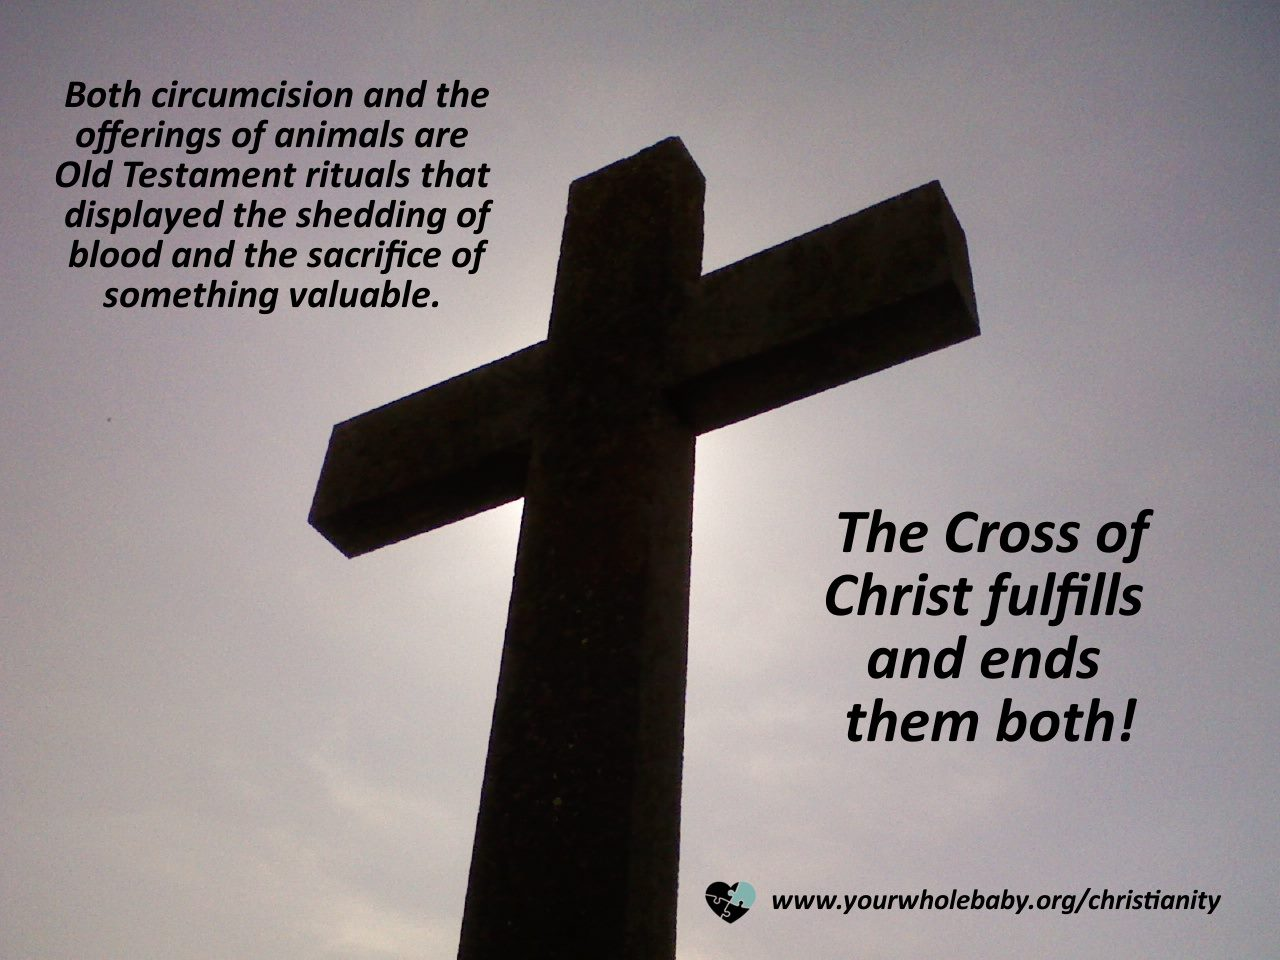 "Image: Backlit cross. Text: ""Both circumcision and the offerings of animals are Old Testament rituals that displayed the shedding of blood and the sacrifice of something valuable. The Cross of Christ fulfills and ends them both!"" www.yourwholebaby.org/christianity"